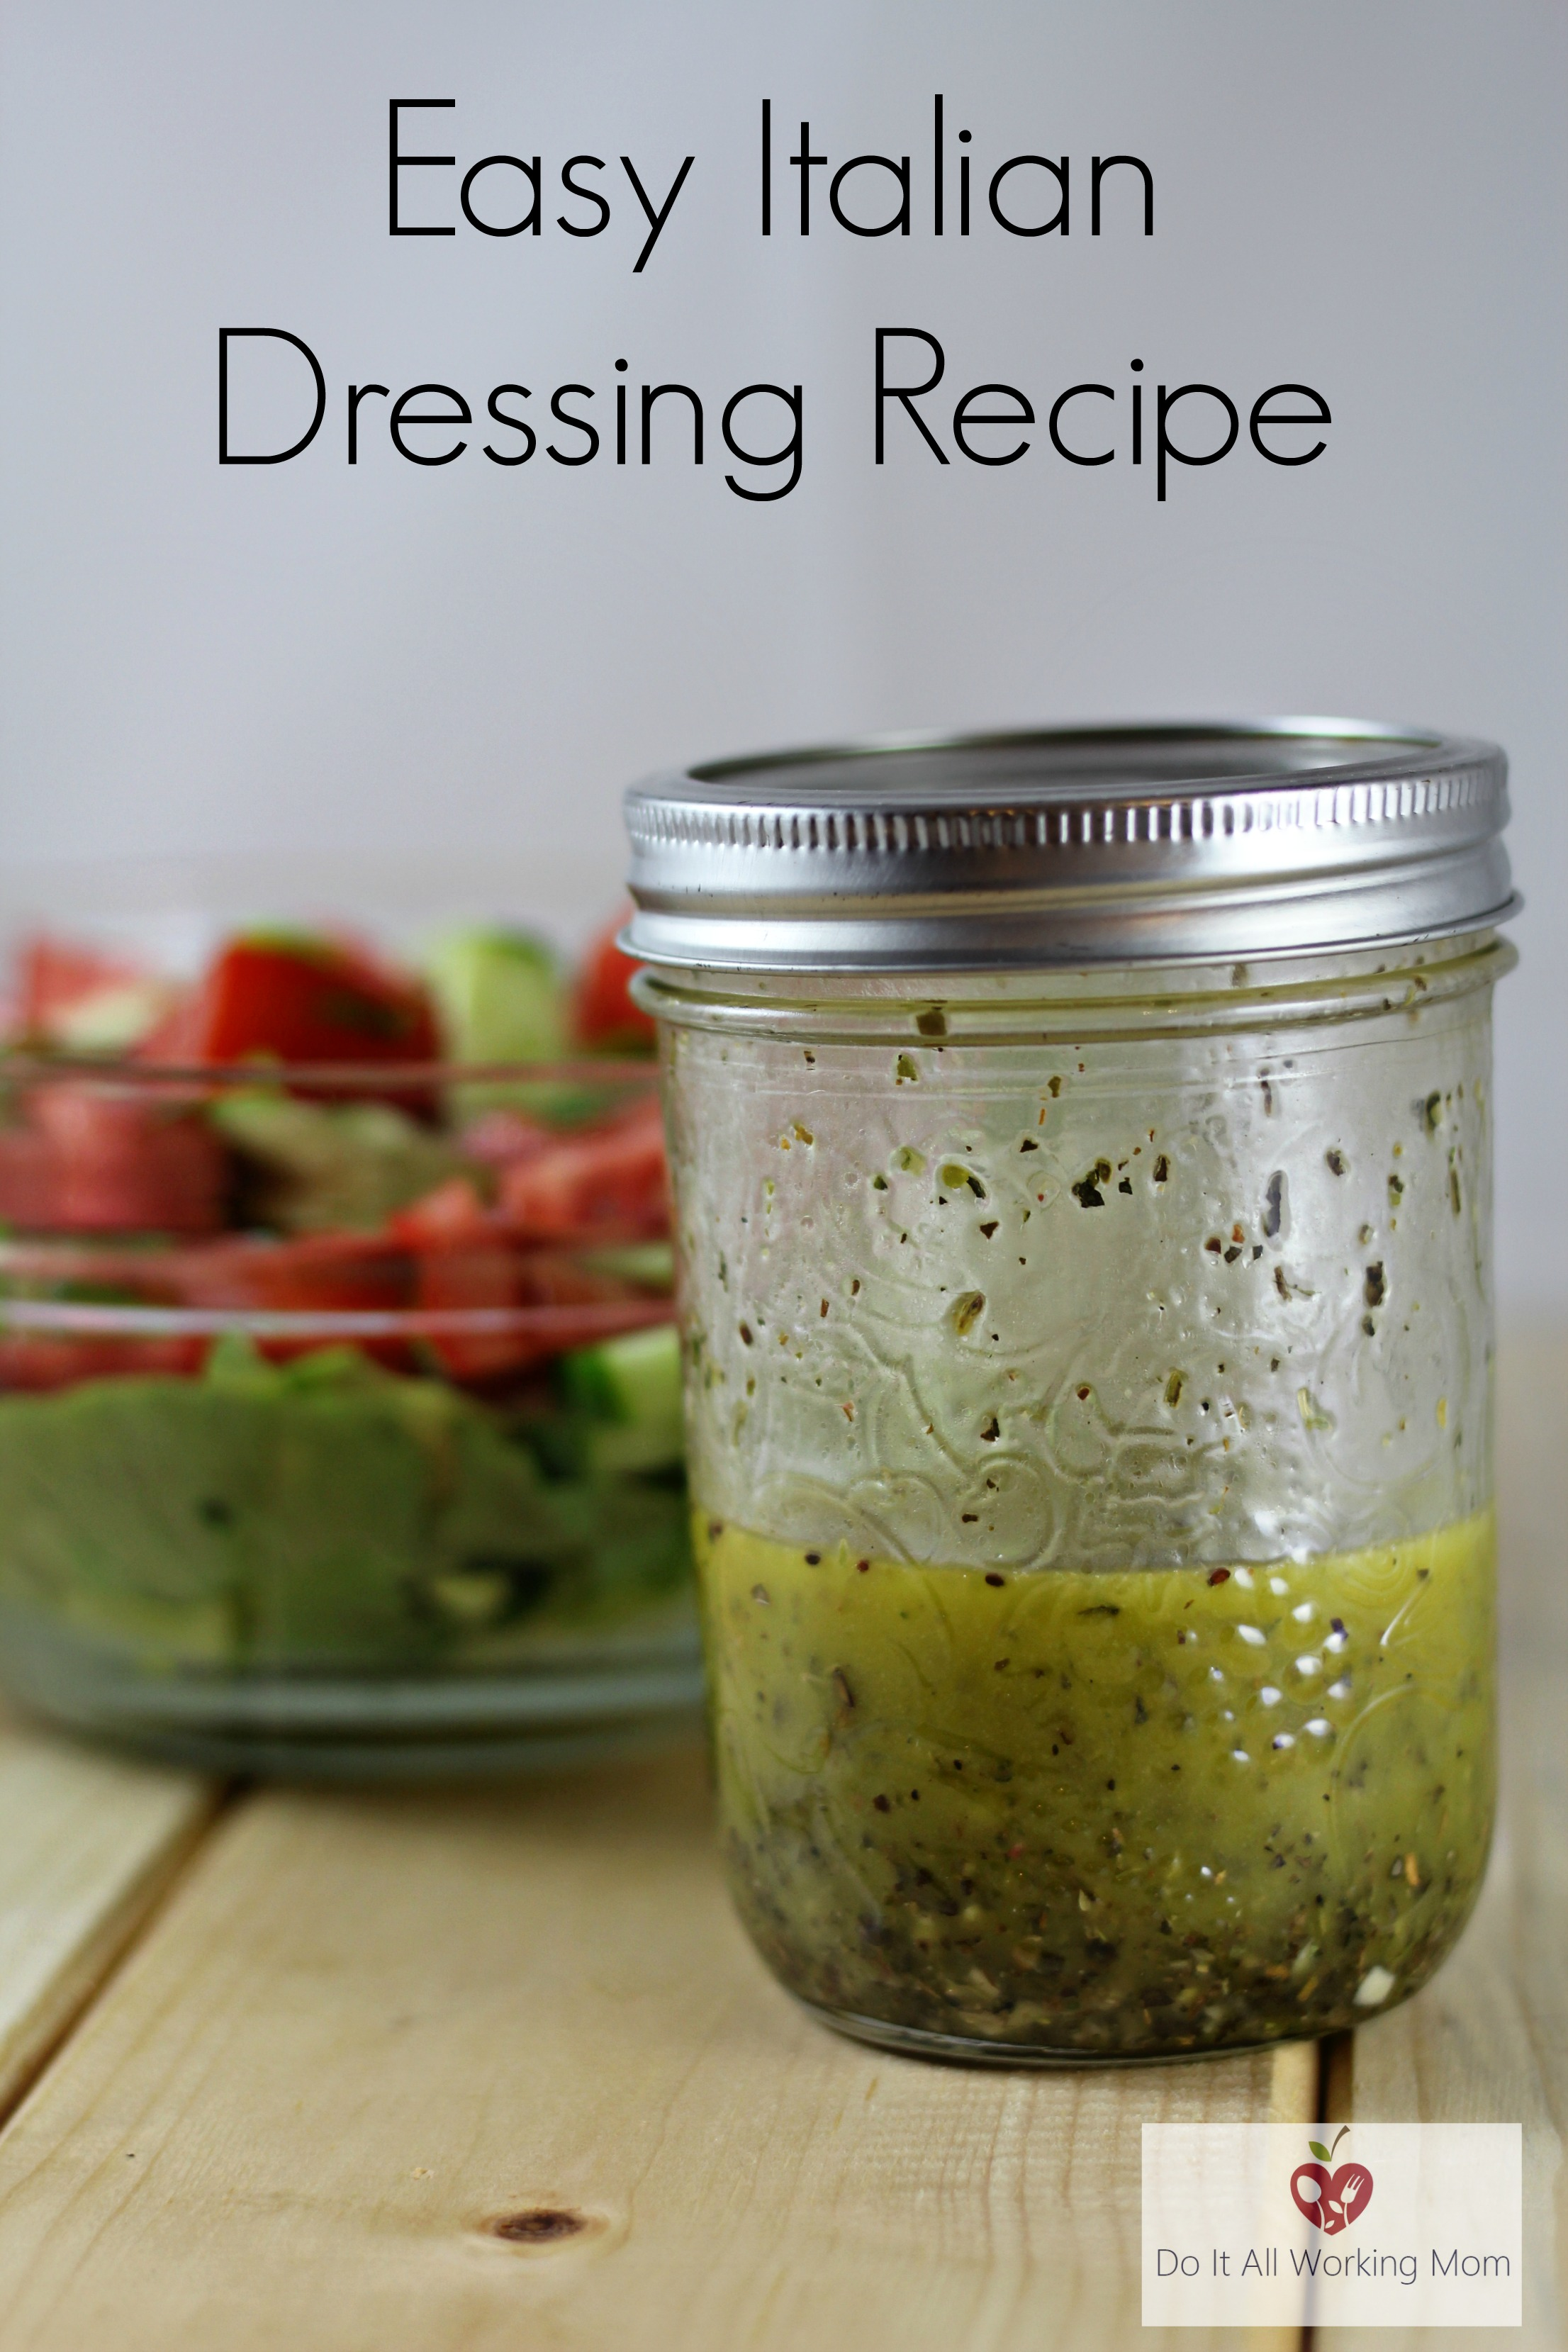 Easy Italian Dressing Recipe